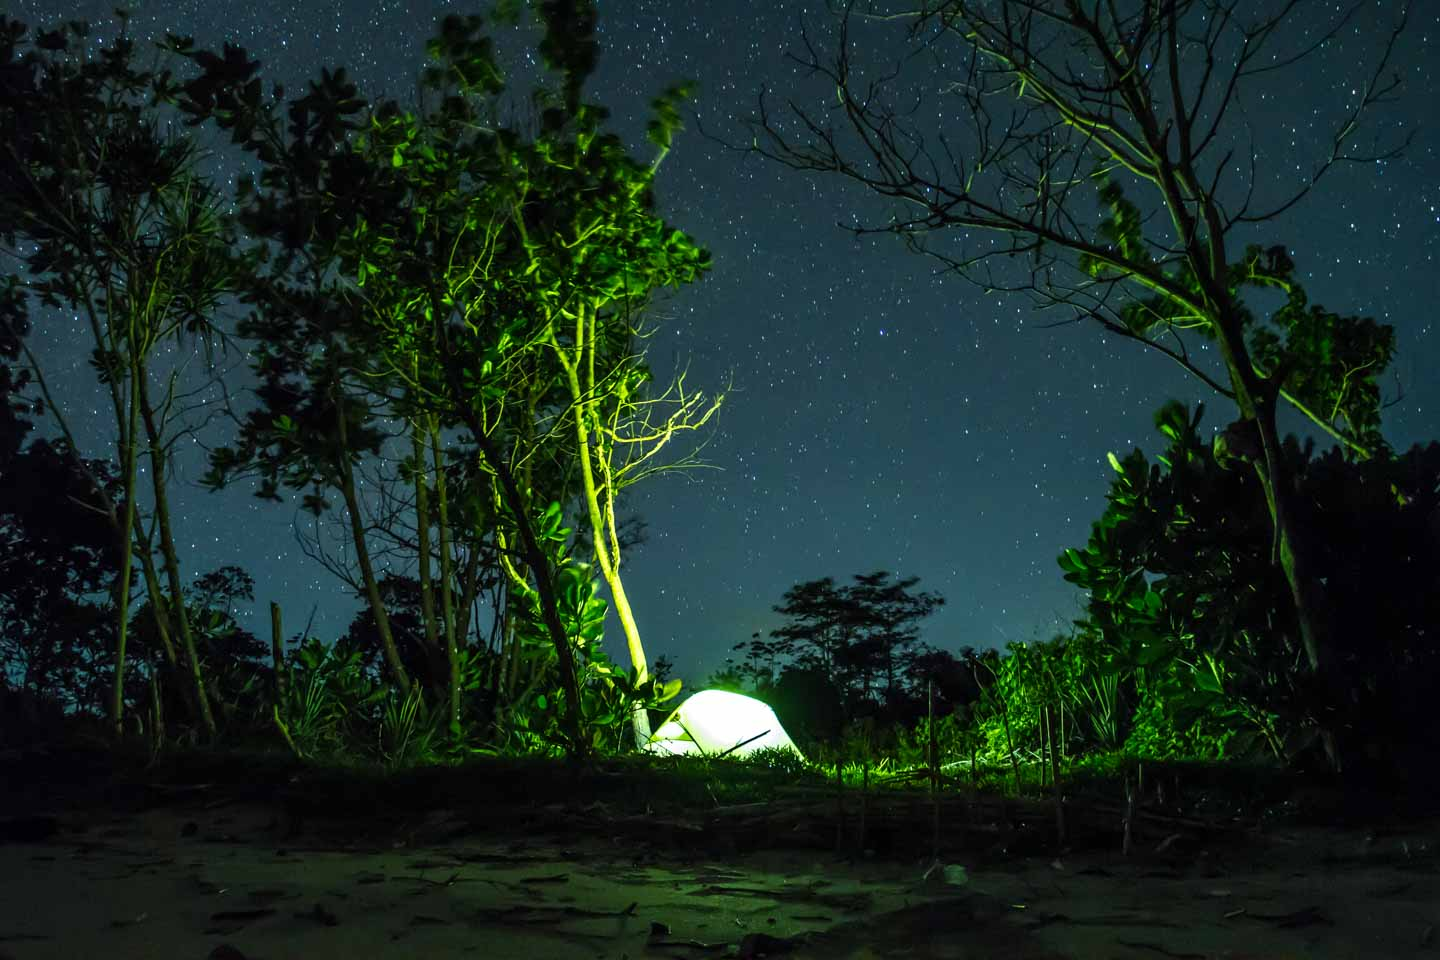 Our MSR Hubba Hubba HP tent at night and stars on the beach in Java